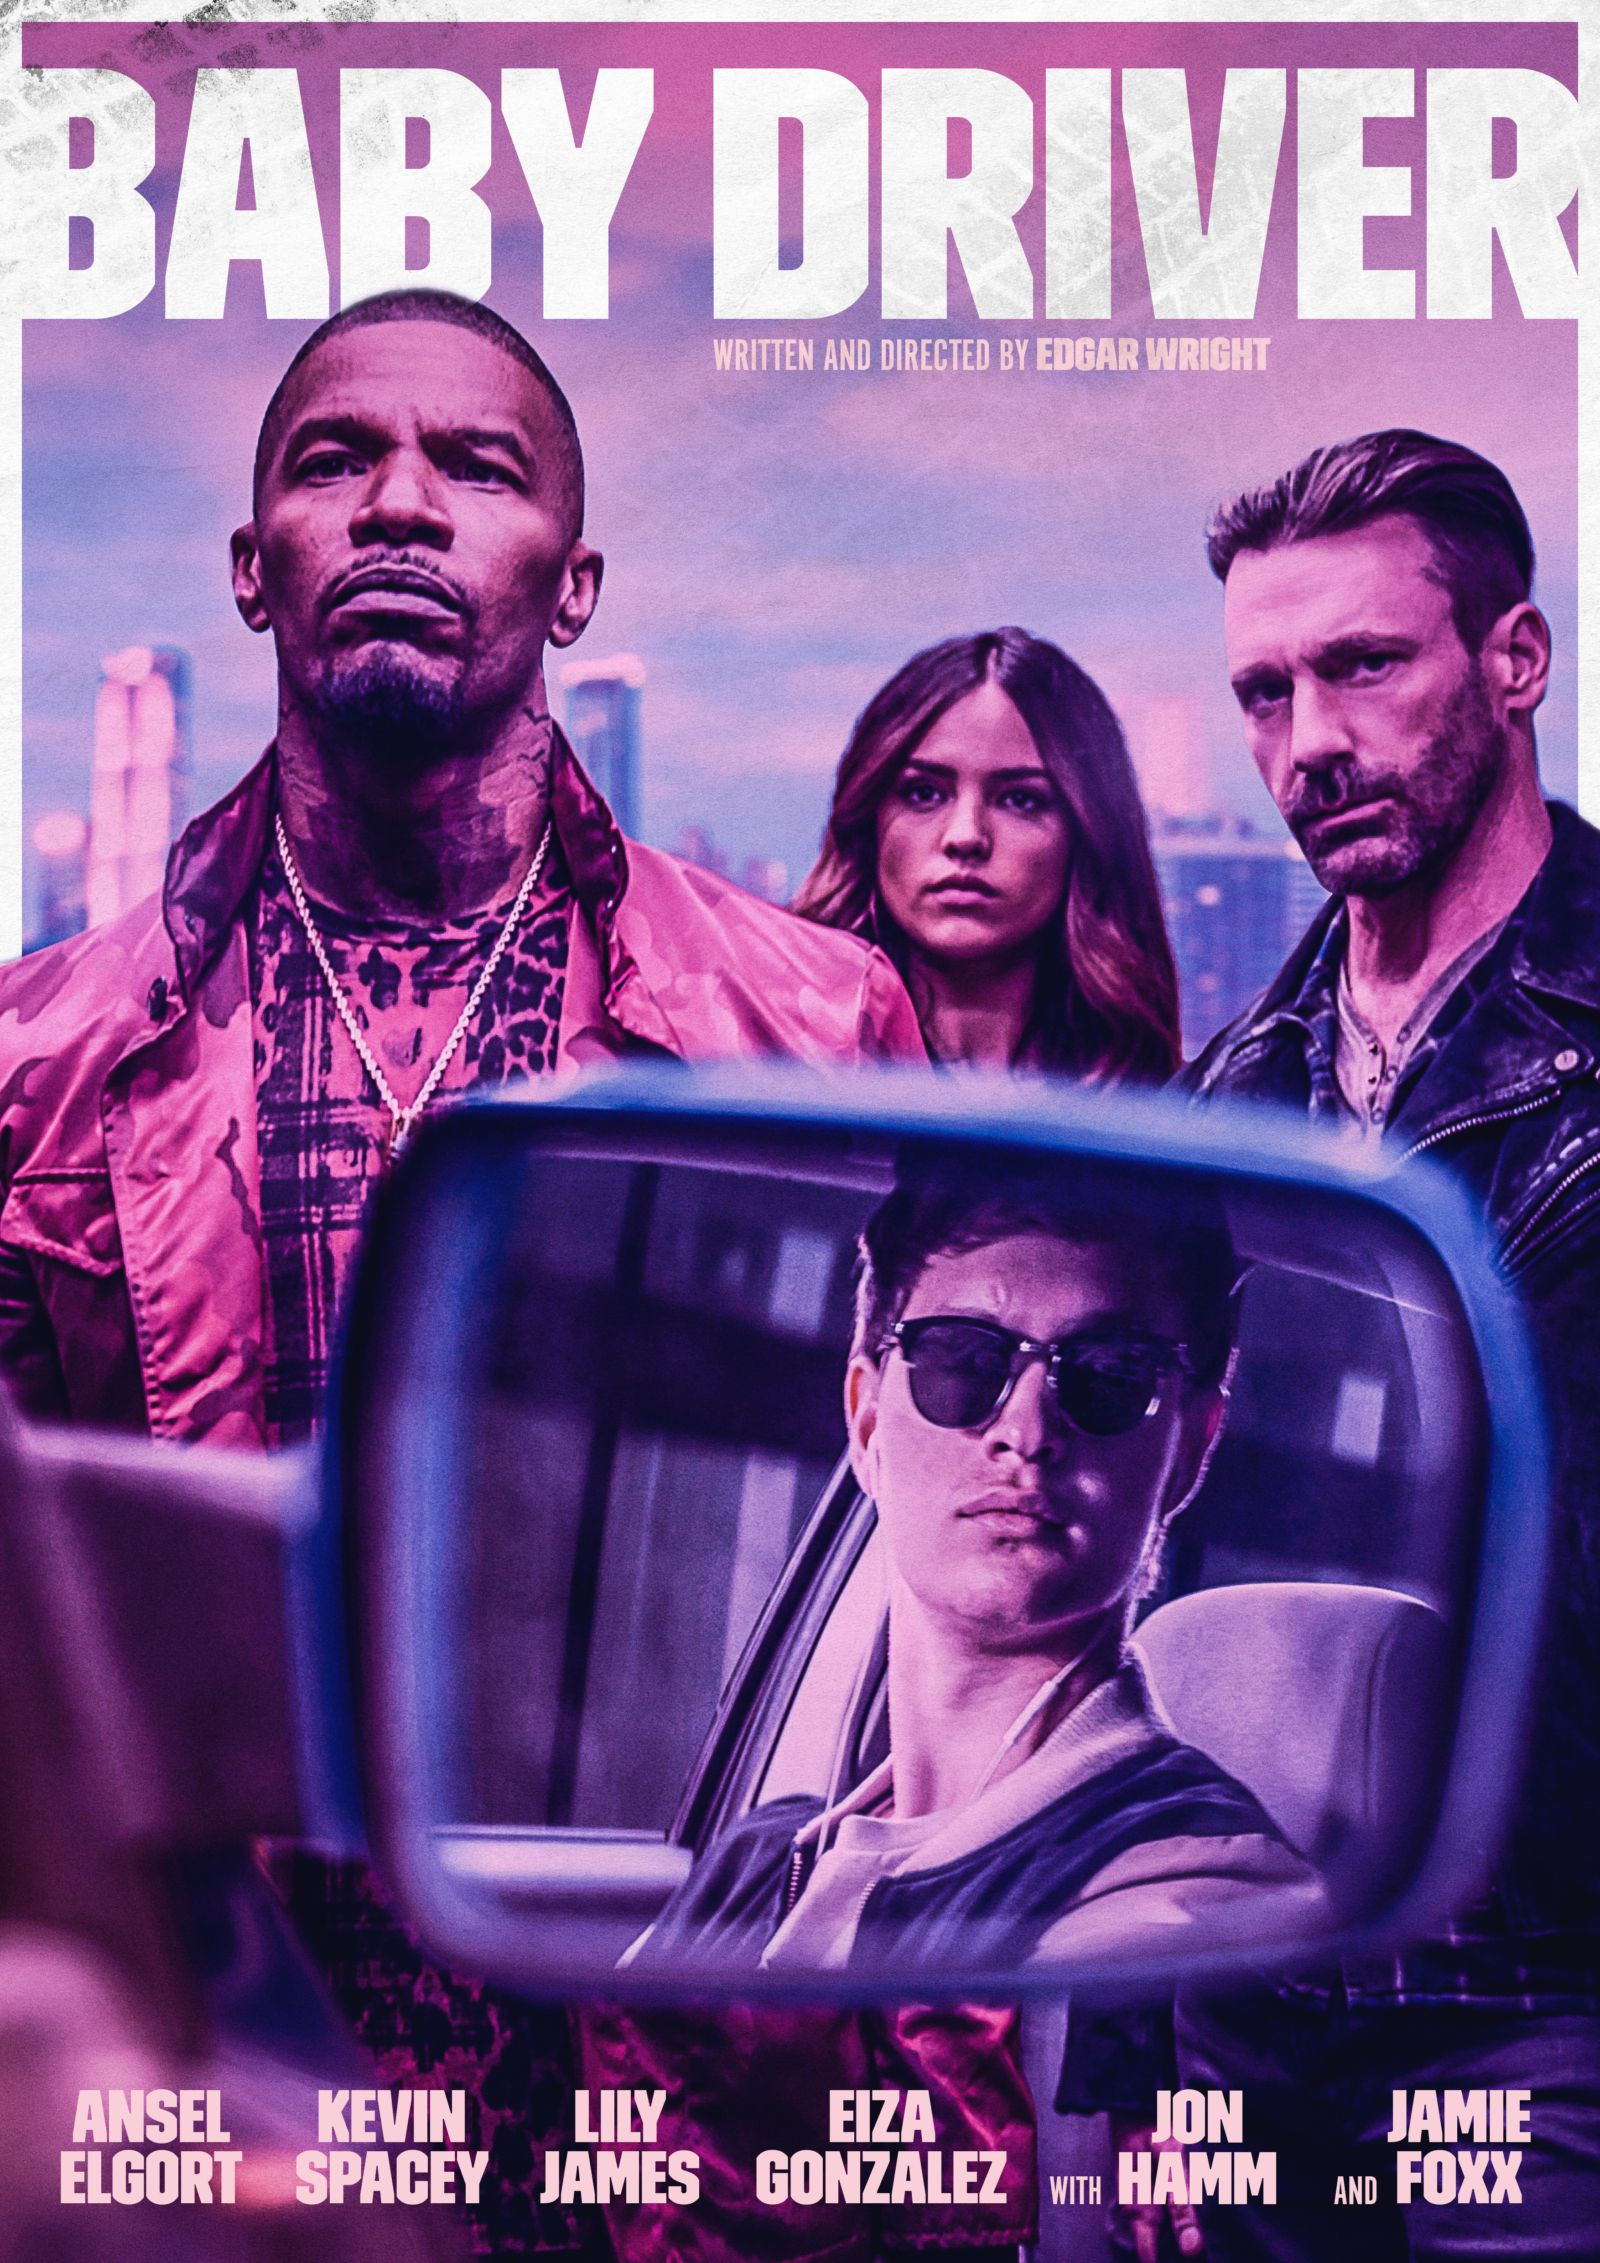 baby driver full movie online free download